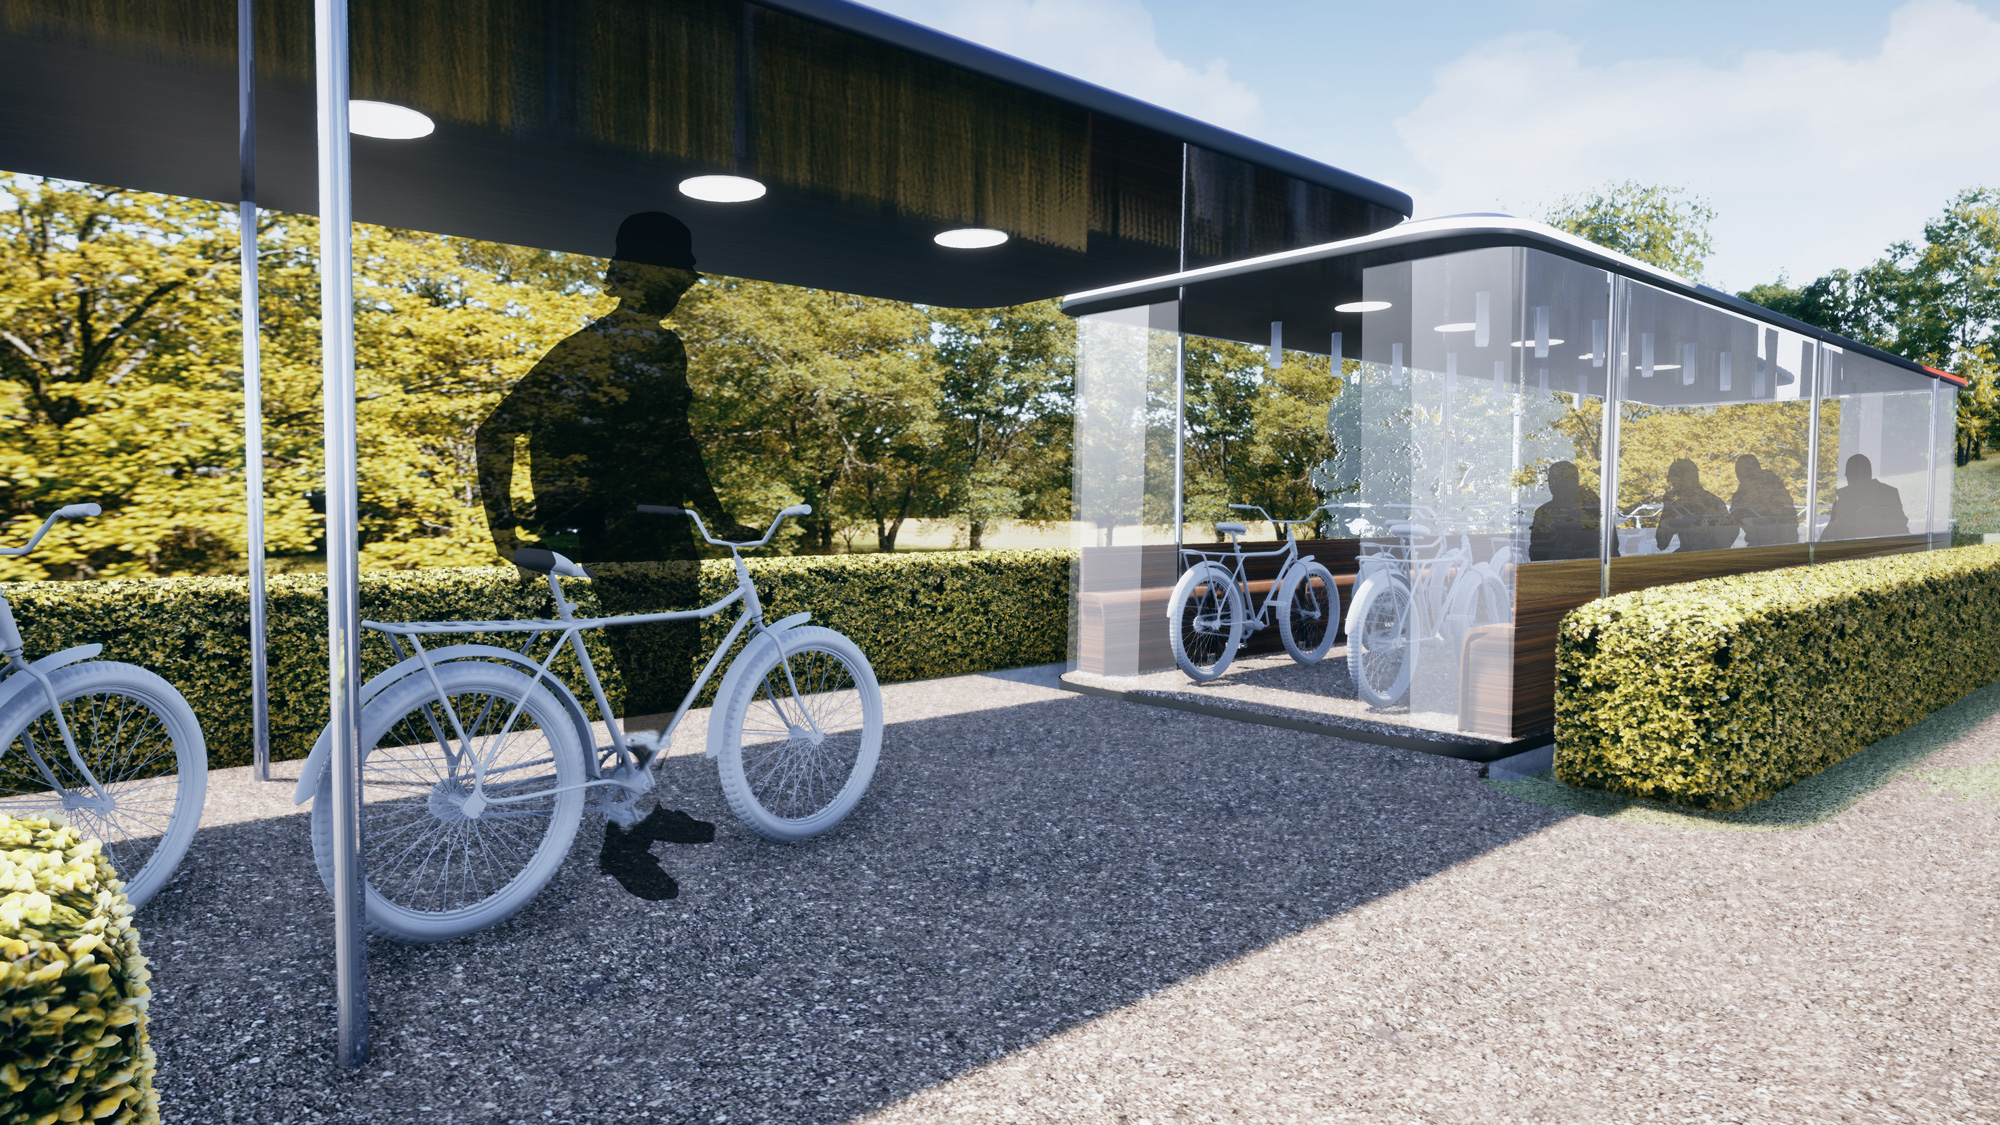 Cyclomatic - More about cycling in a multimodal future.